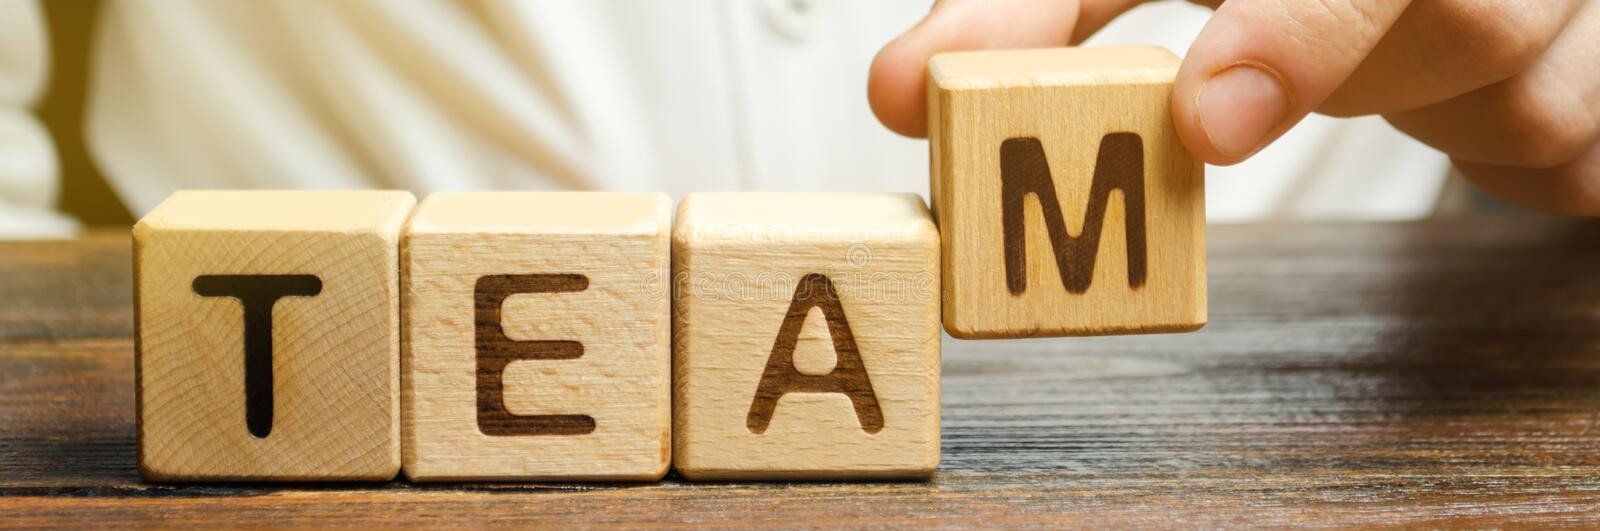 Businessman holds wooden blocks with the word Team. Team management concept. Teamwork. Hiring. Recruitment staff. Work in. Cooperation. Leadership skills royalty free stock images